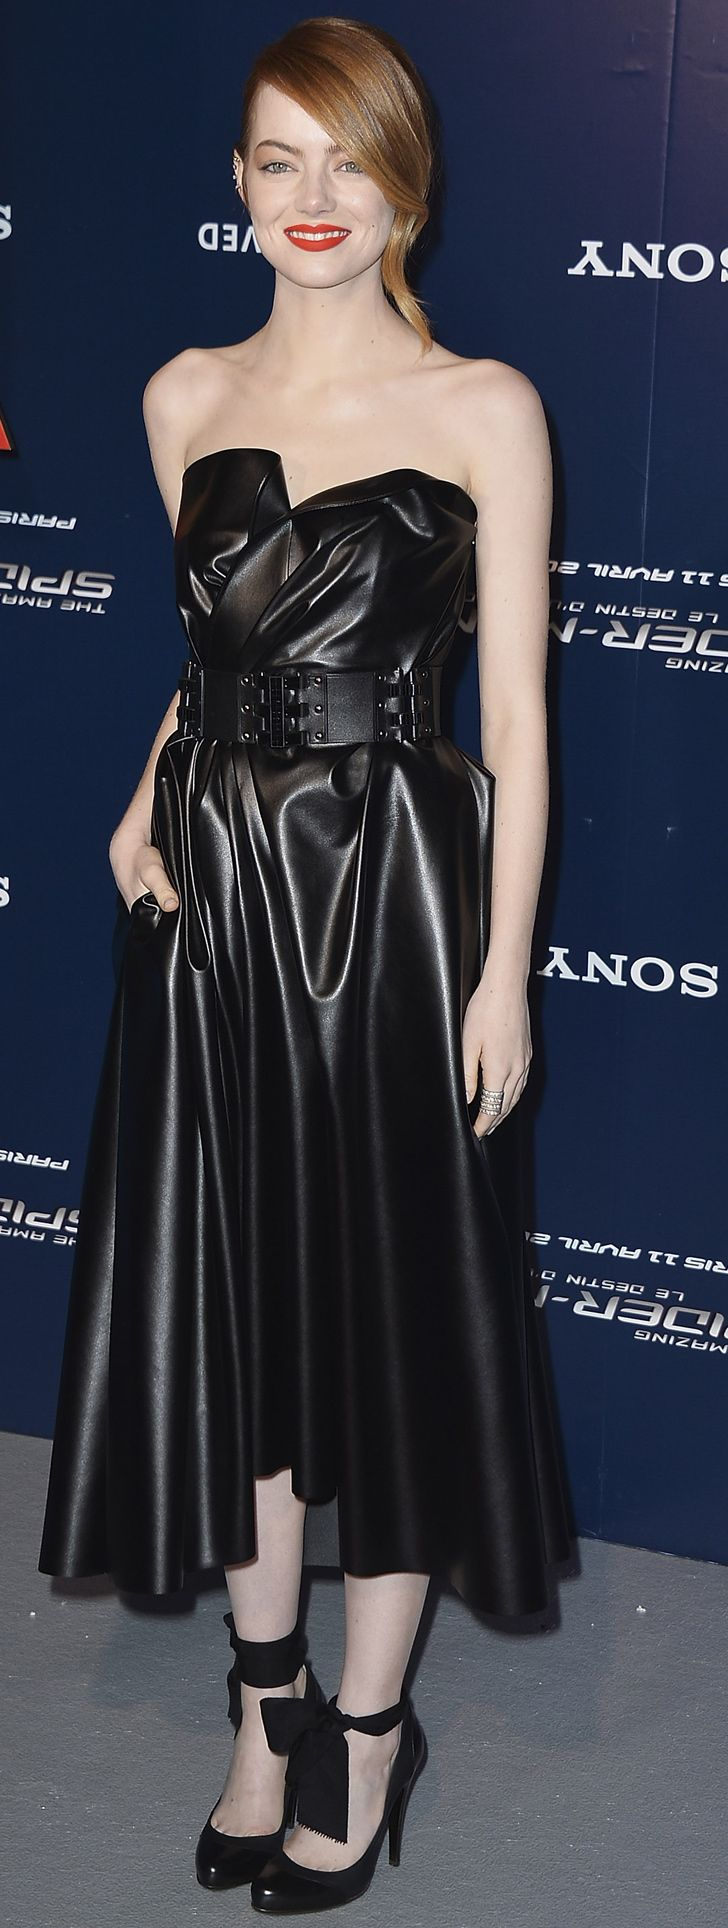 Emma Stone in Lanvin at the Paris The Amazing Spider-Man 2 premiere.